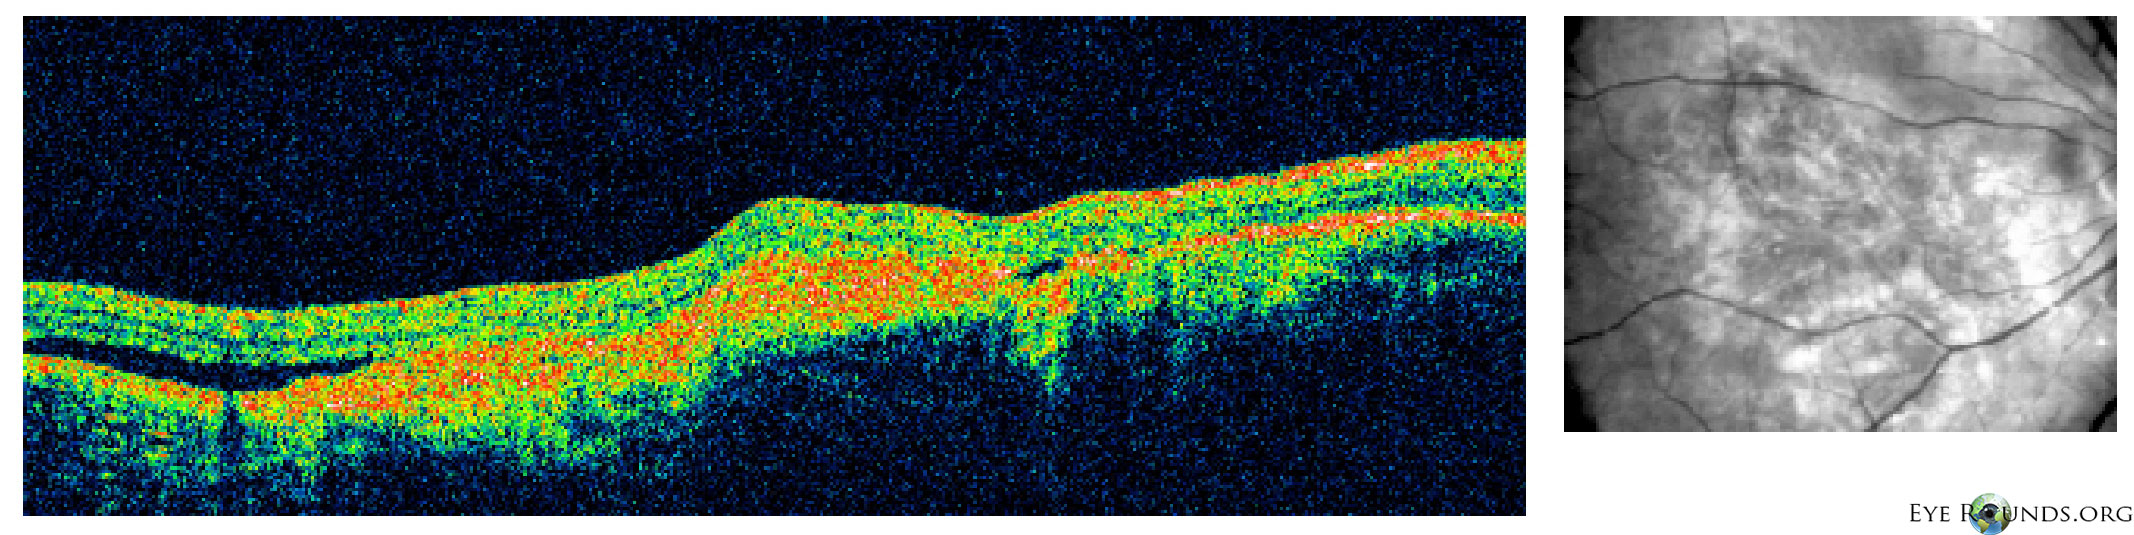 Choroidal Osteoma Online Atlas Of Ophthalmology The